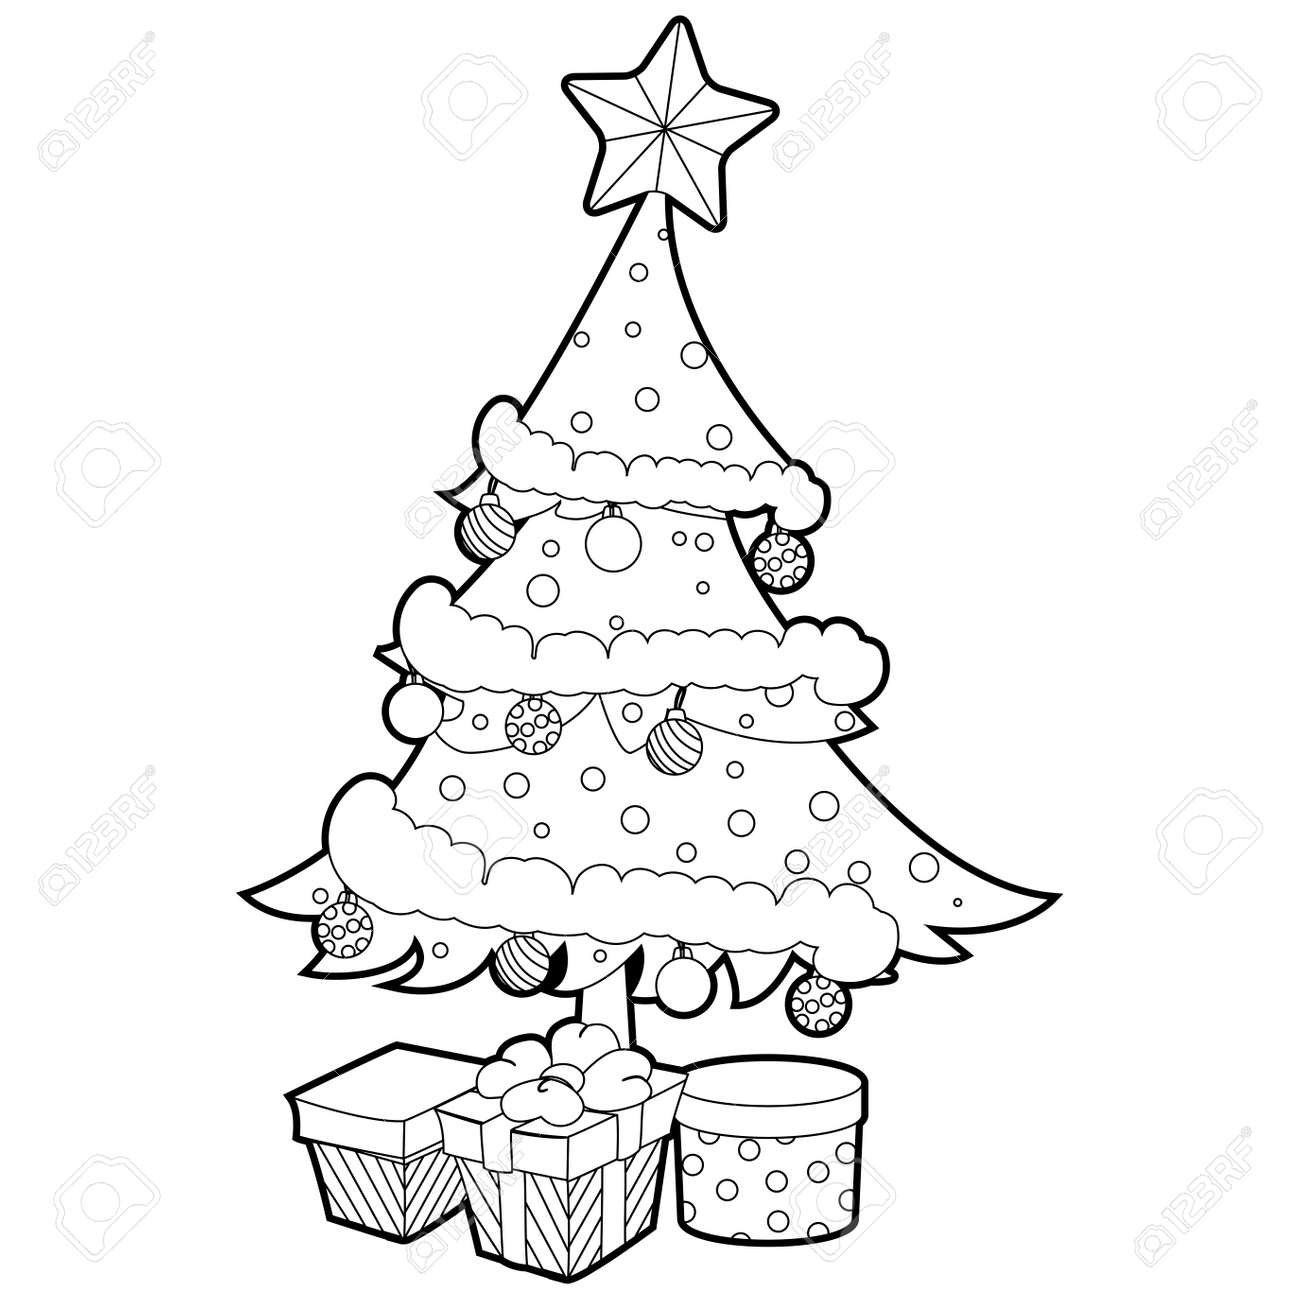 Coloring Book Outlined Christmas Tree With Gift Box. Royalty Free ...